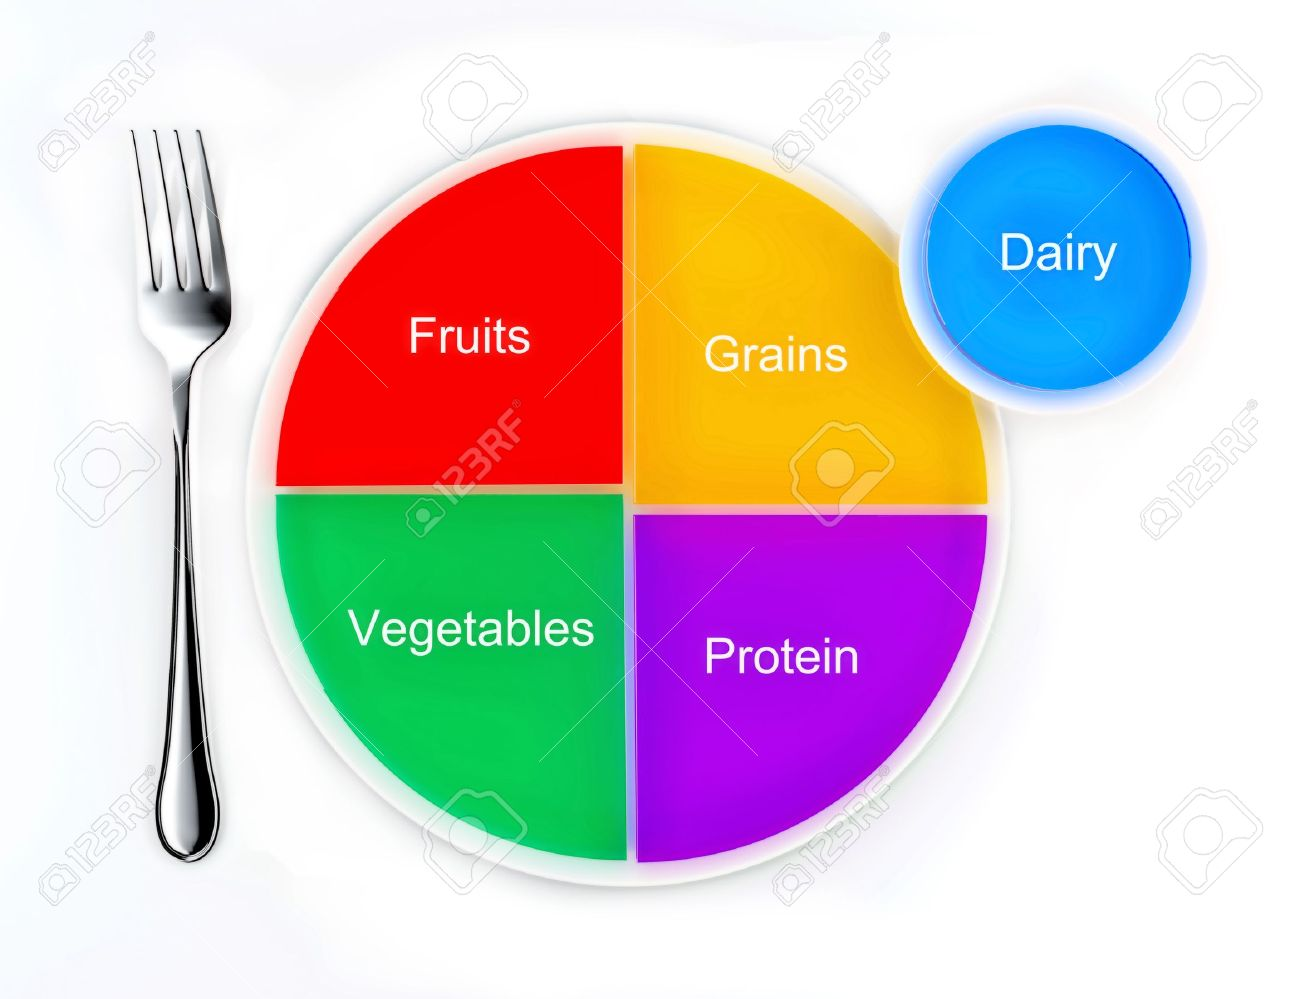 the food groups represented as a pie chart on a plate, the new